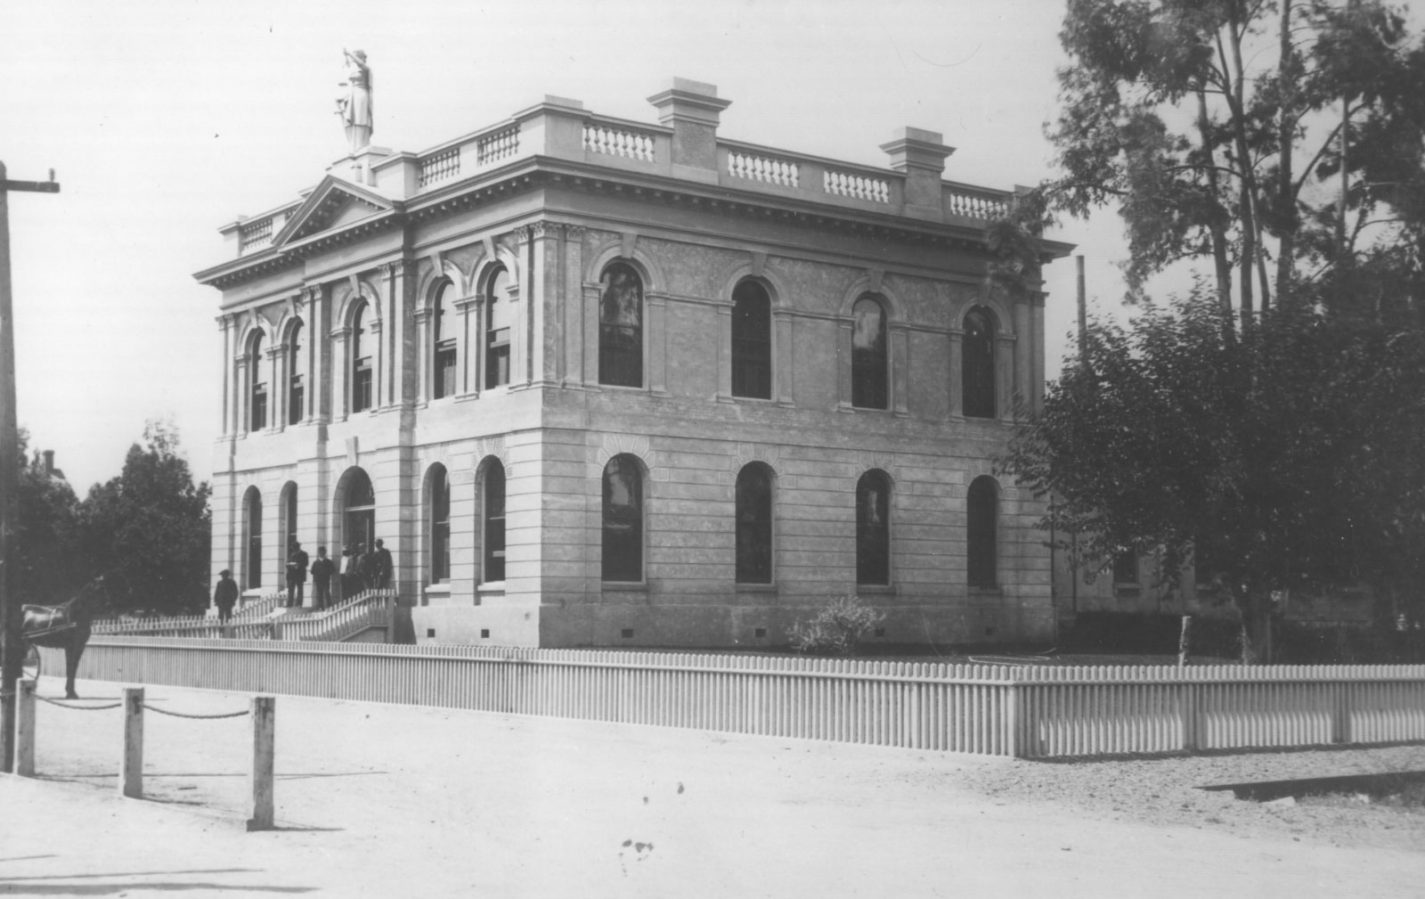 Archival exterior photo of second county courthouse of San Mateo County